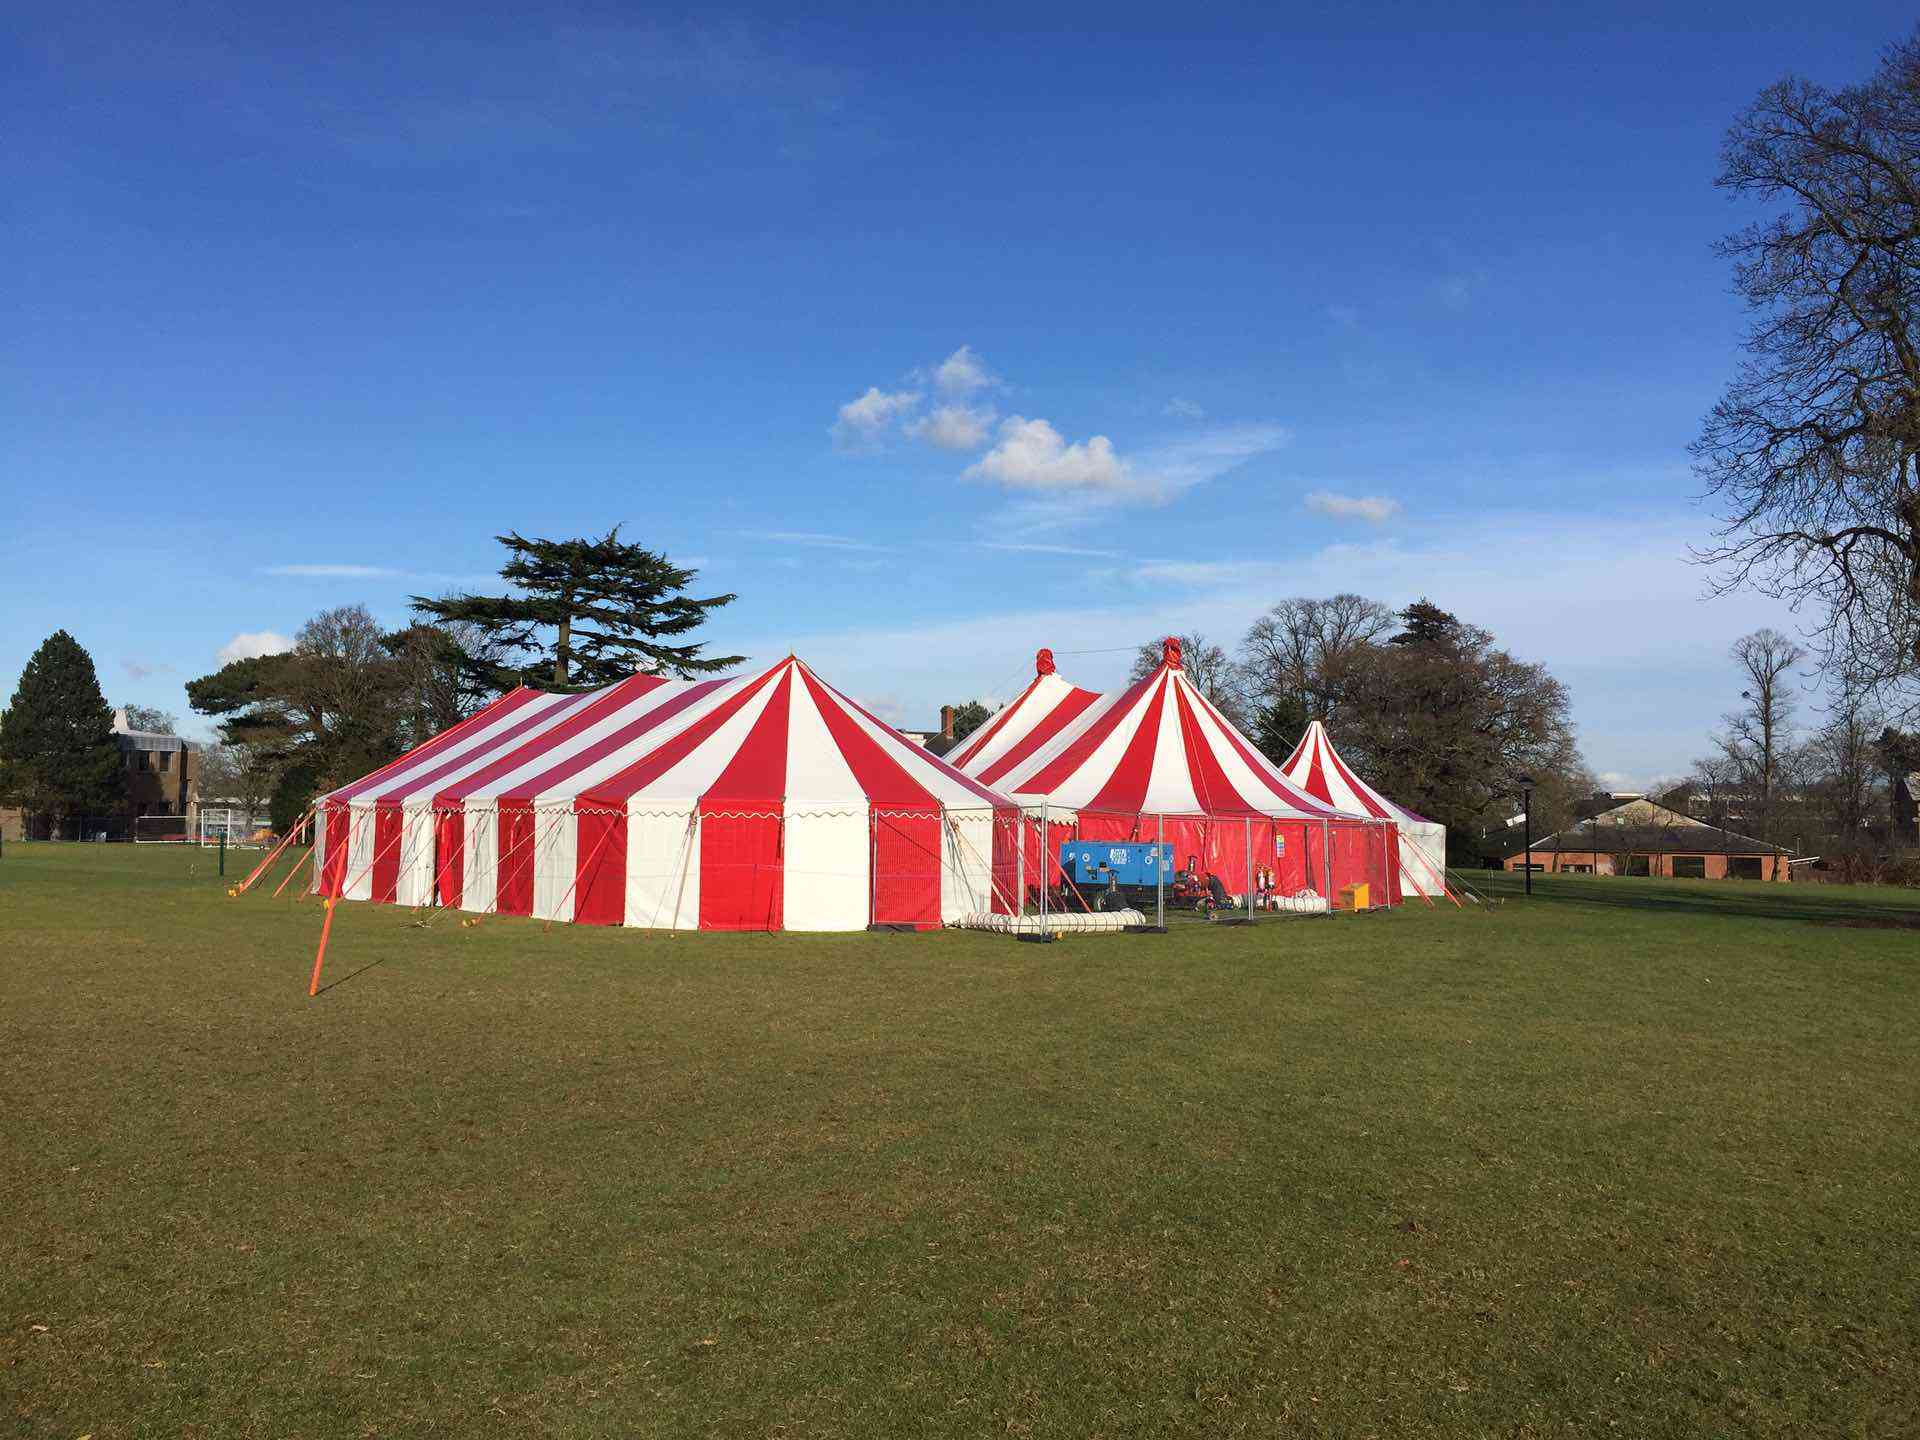 Red rock is a red & white service tent for hire